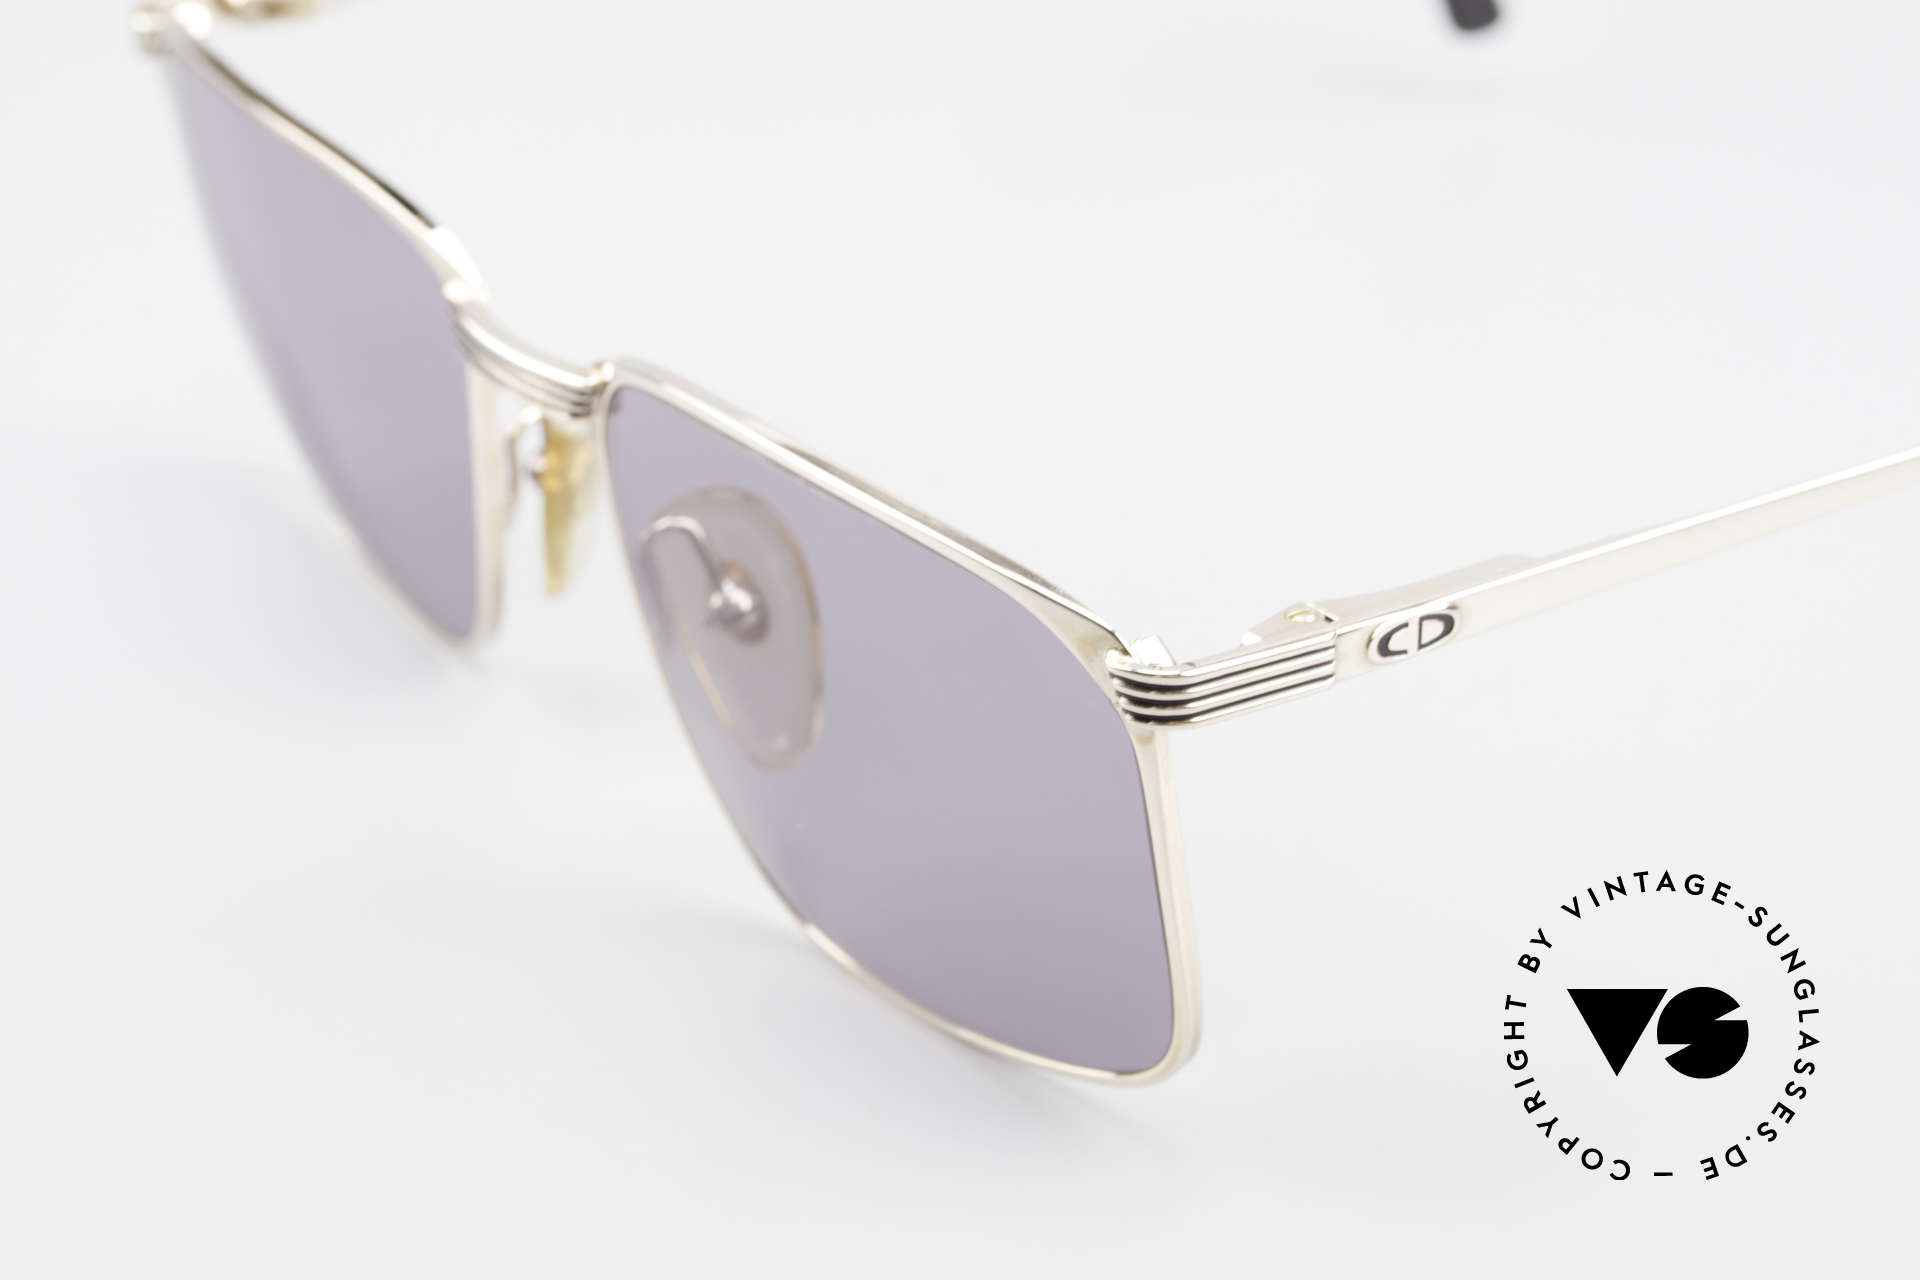 Christian Dior 2728 80's Gentlemen's Sunglasses, new old stock (like all our rare vintage Dior shades), Made for Men